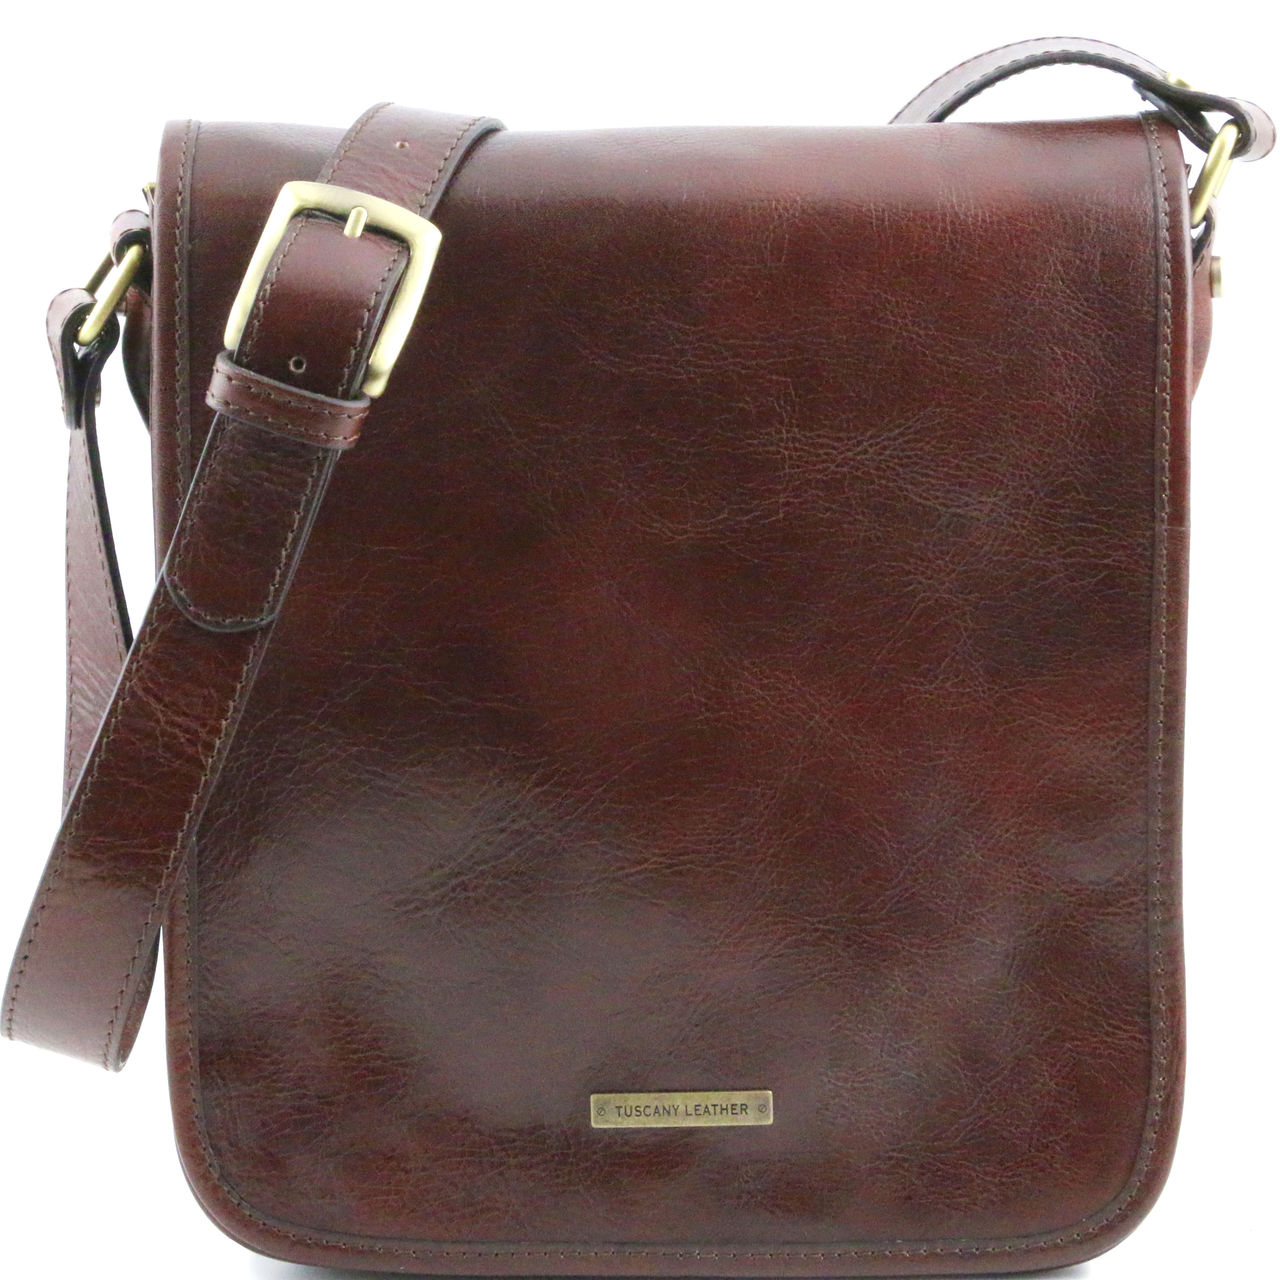 ccc33d1472 Tuscany Leather TL Vertical Leather Messenger Bag (Two Compartment)